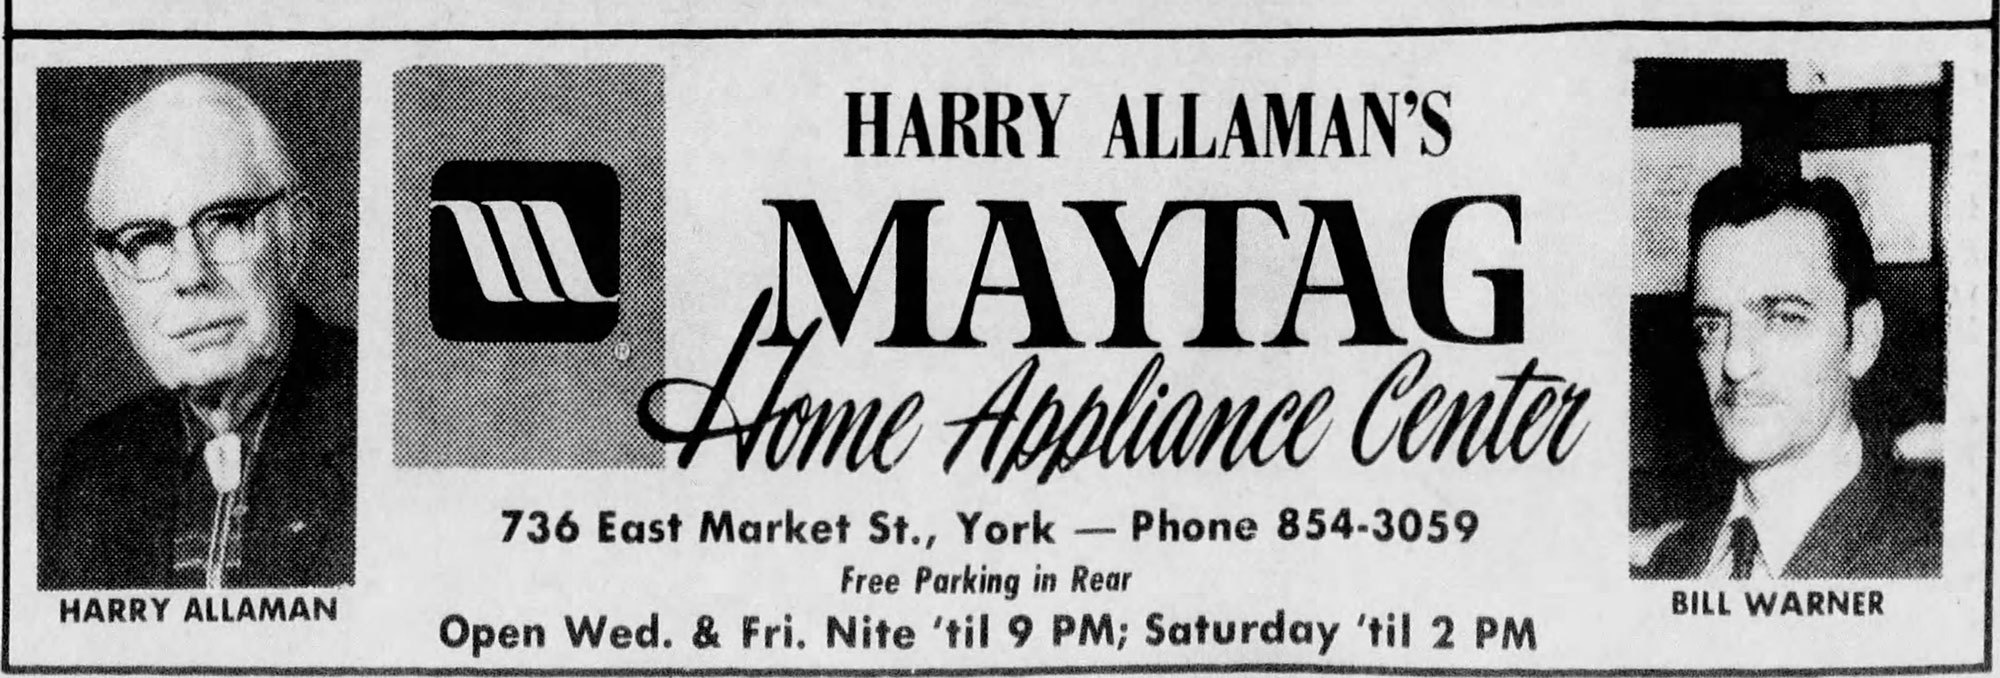 Audrey Lerew found this ad for Harry Allaman's Maytag Home Appliance Center in a 1975 edition of the York Daily Record.